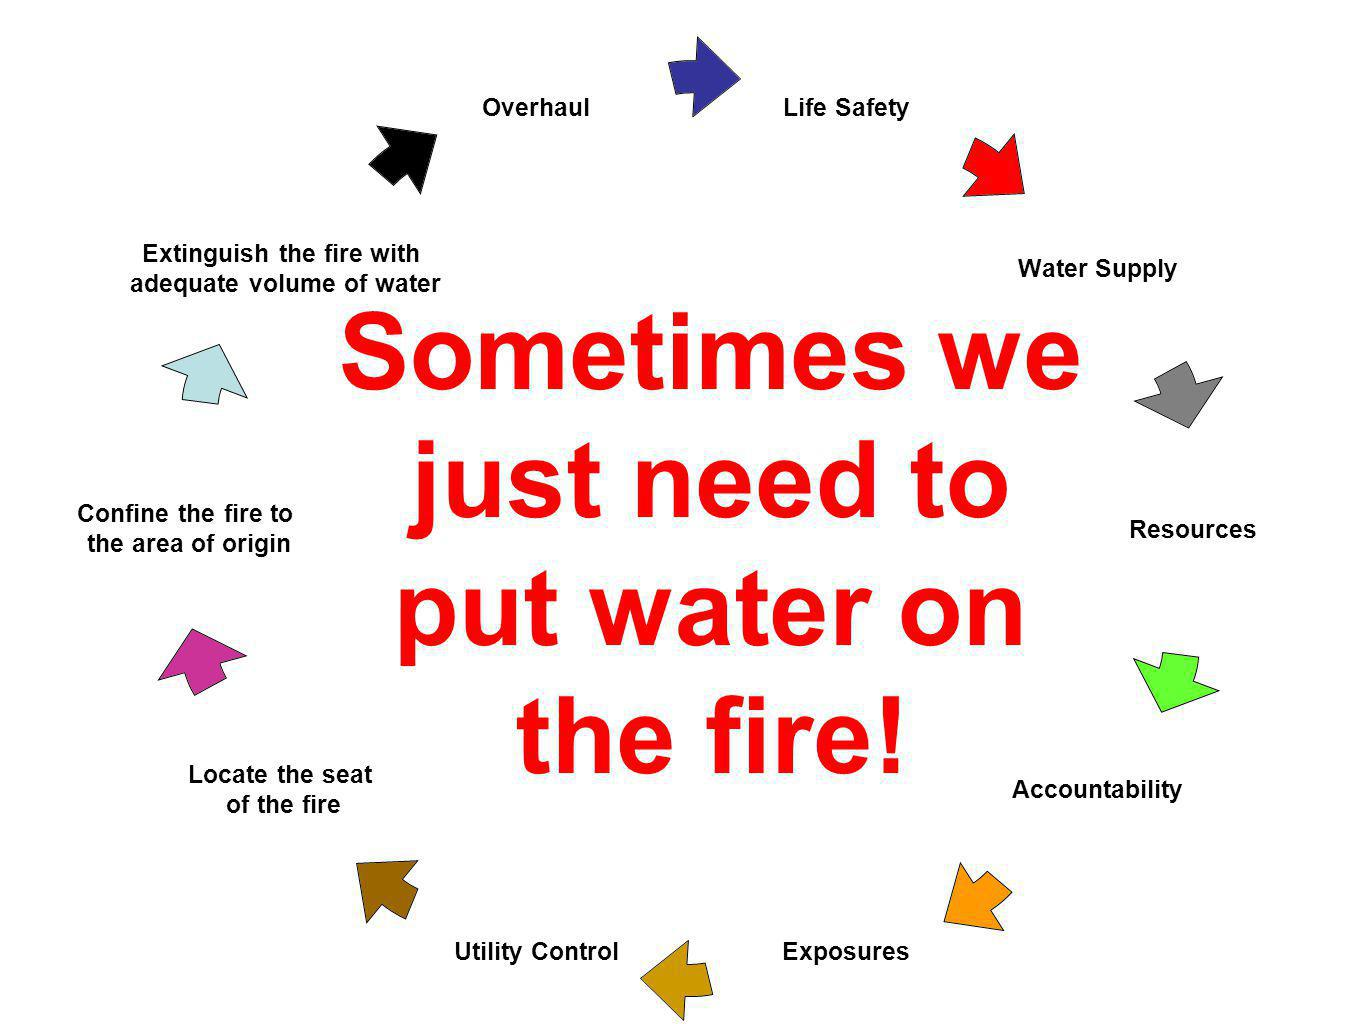 Sometimes we just need to put water on the fire!